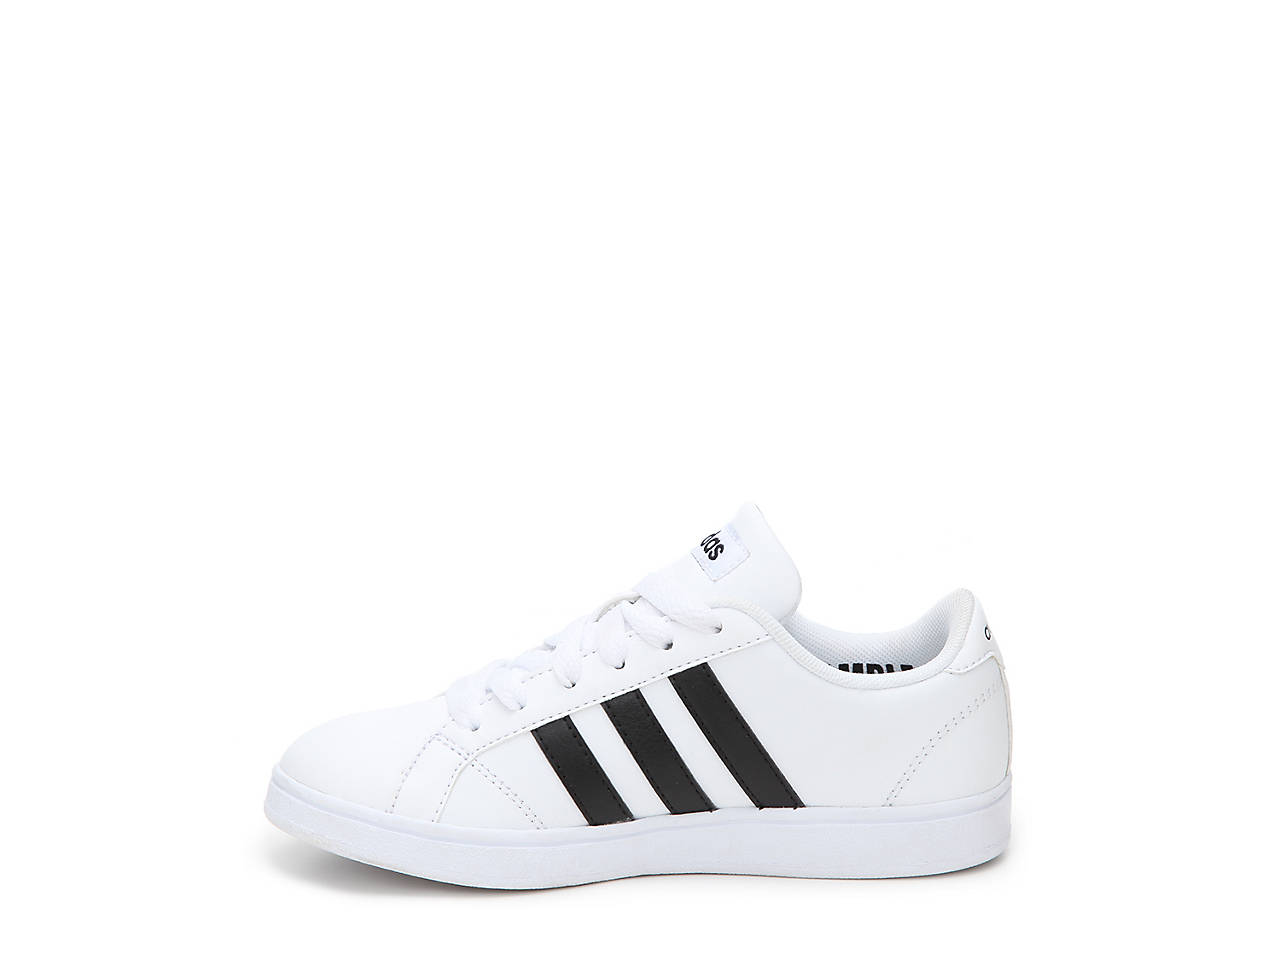 adidas Baseline Toddler   Youth Sneaker Kids Shoes  0692540f5